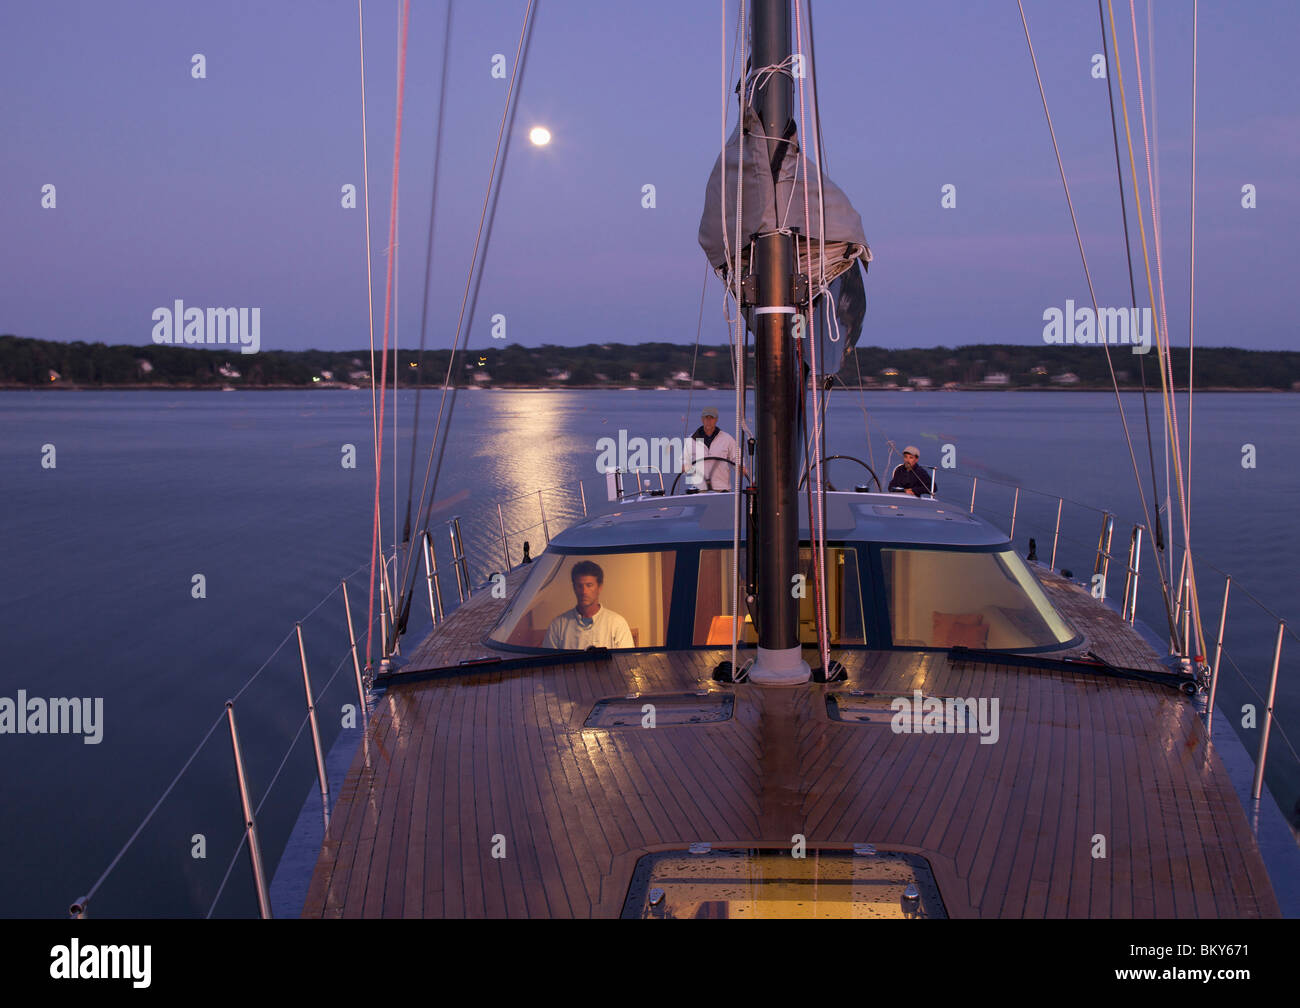 A crew navigates a racing yacht home at dusk using high tech instruments. - Stock Image